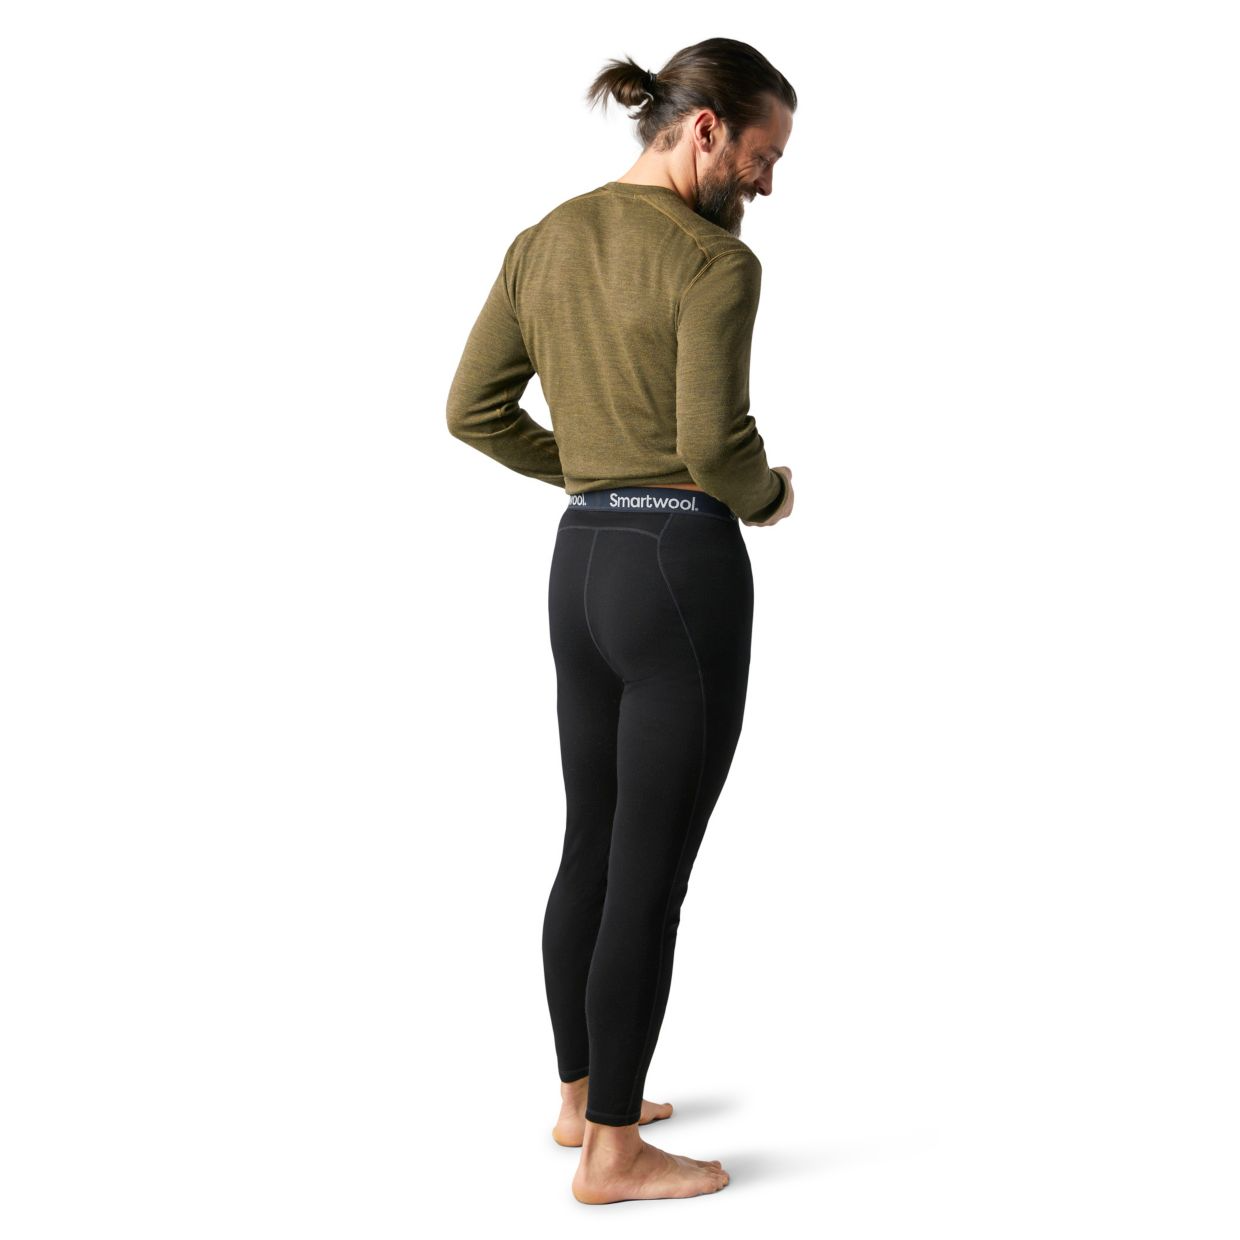 SMARTWOOL Smartwool Men's Merino 250 Baselayer Bottom